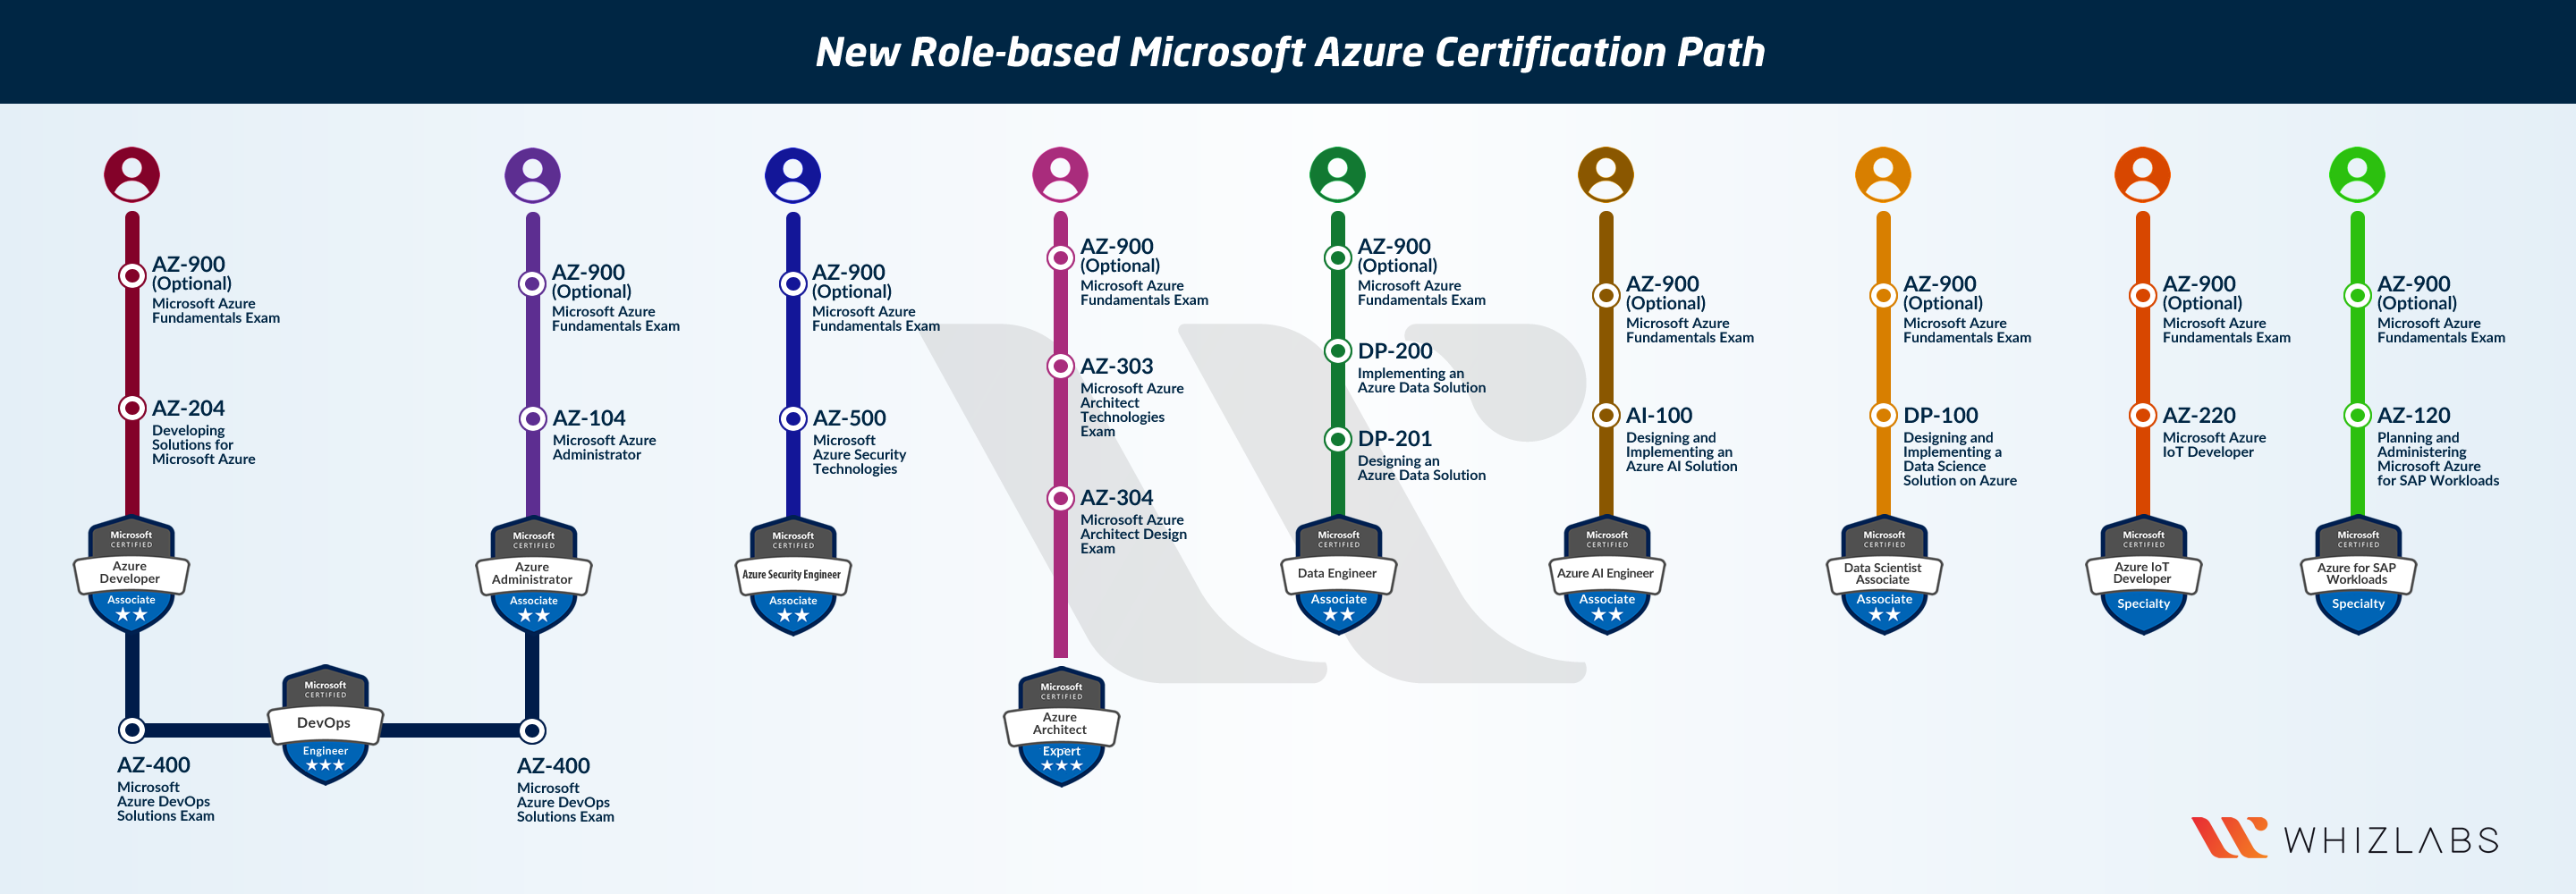 Azure Certification Path 2020